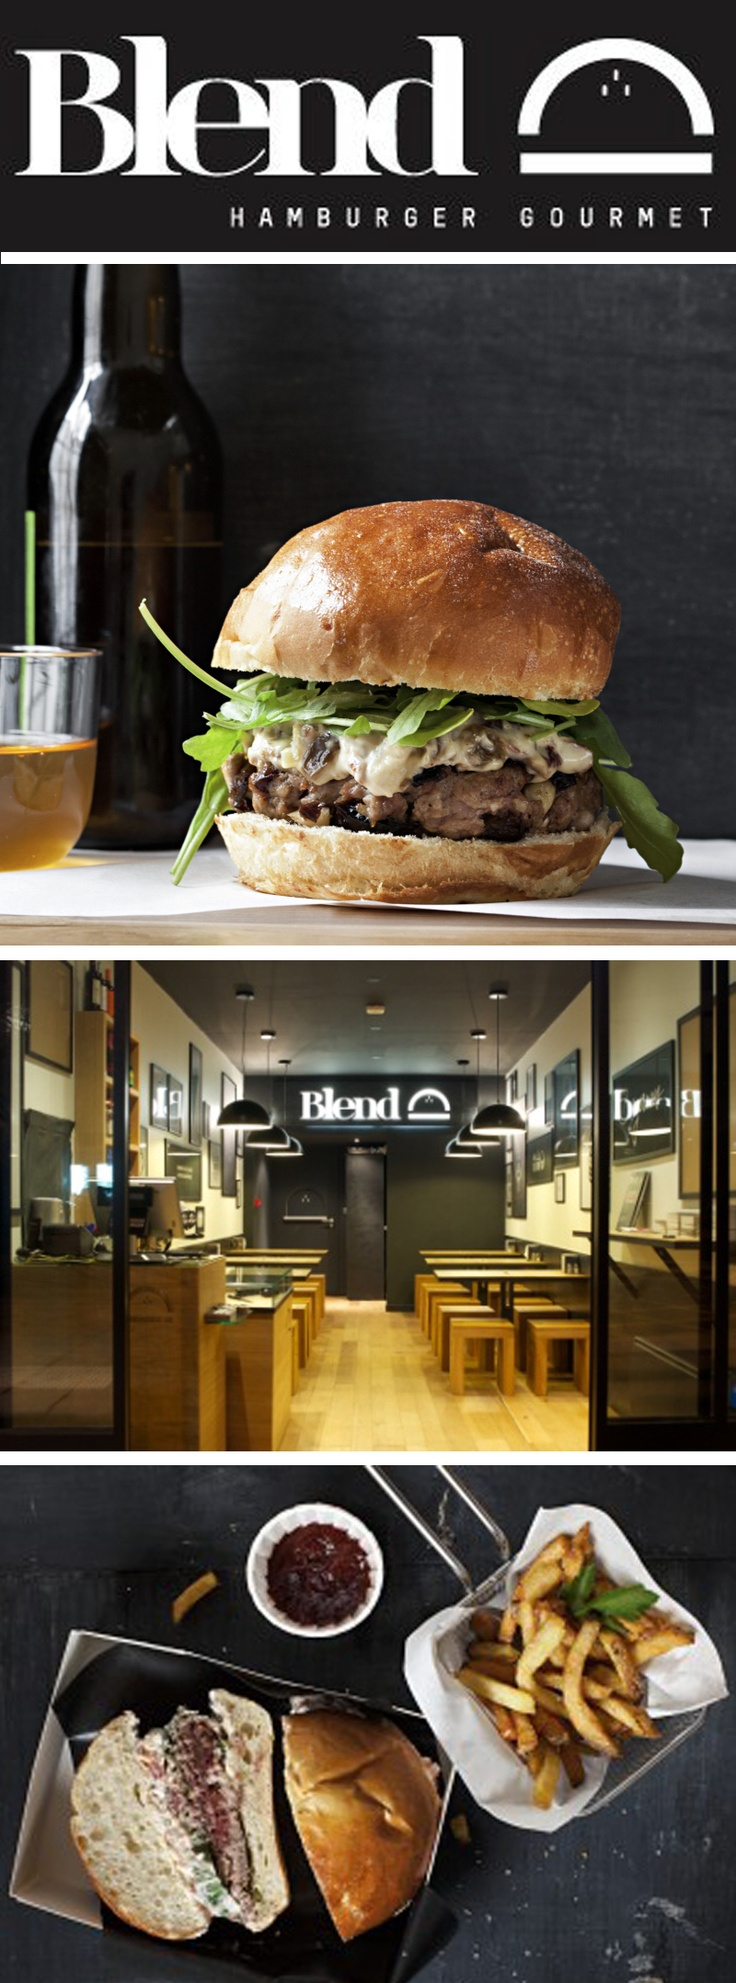 BLEND, Hamburger Gourmet - 44 Rue d'Argout 75002 Paris, France - 01 40 26 84 57